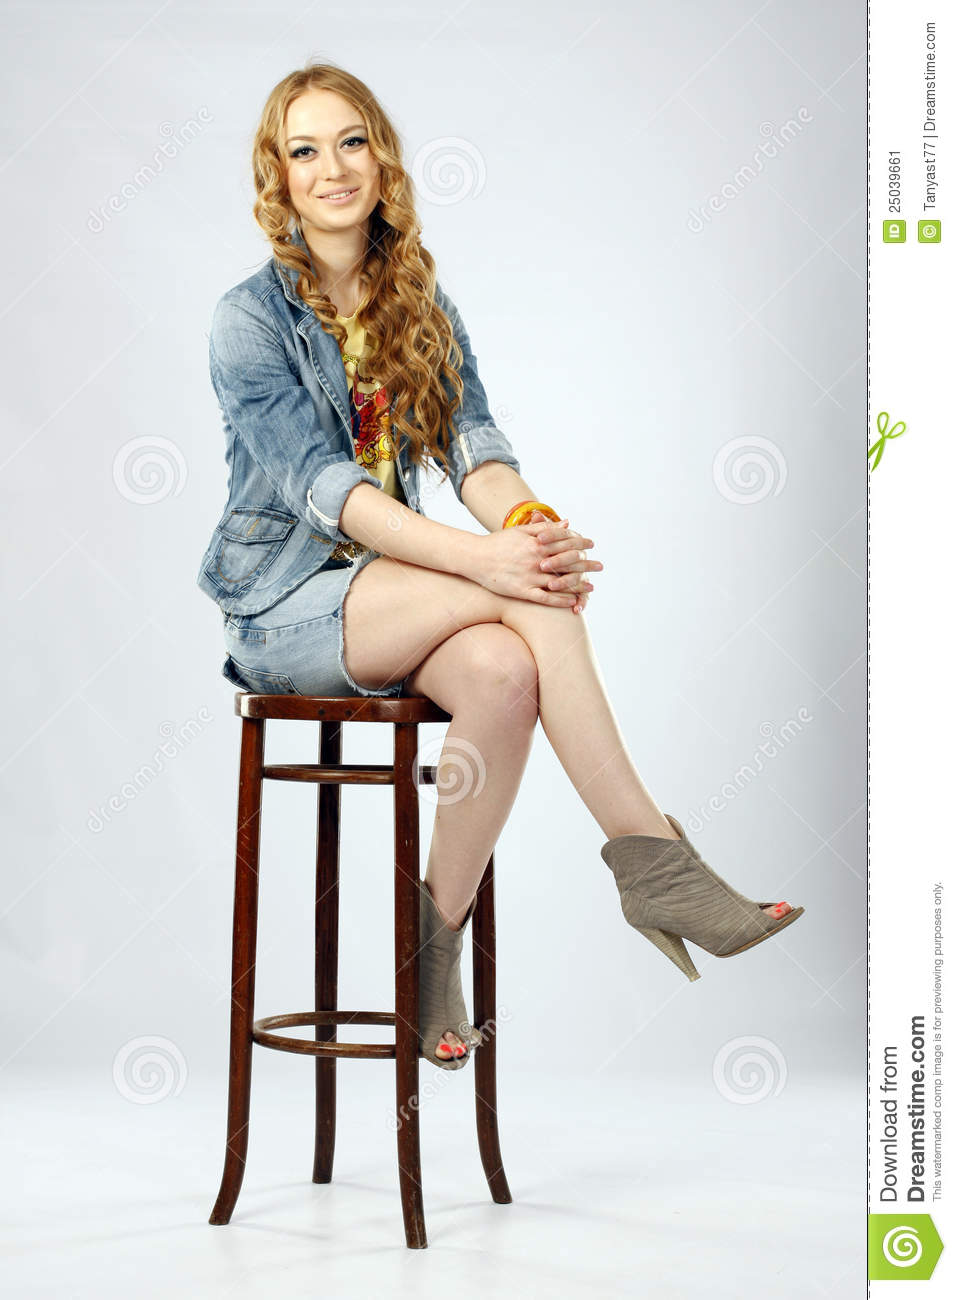 Tremendous Young Beautiful Woman Sitting On A Stool Stock Image Image Gamerscity Chair Design For Home Gamerscityorg